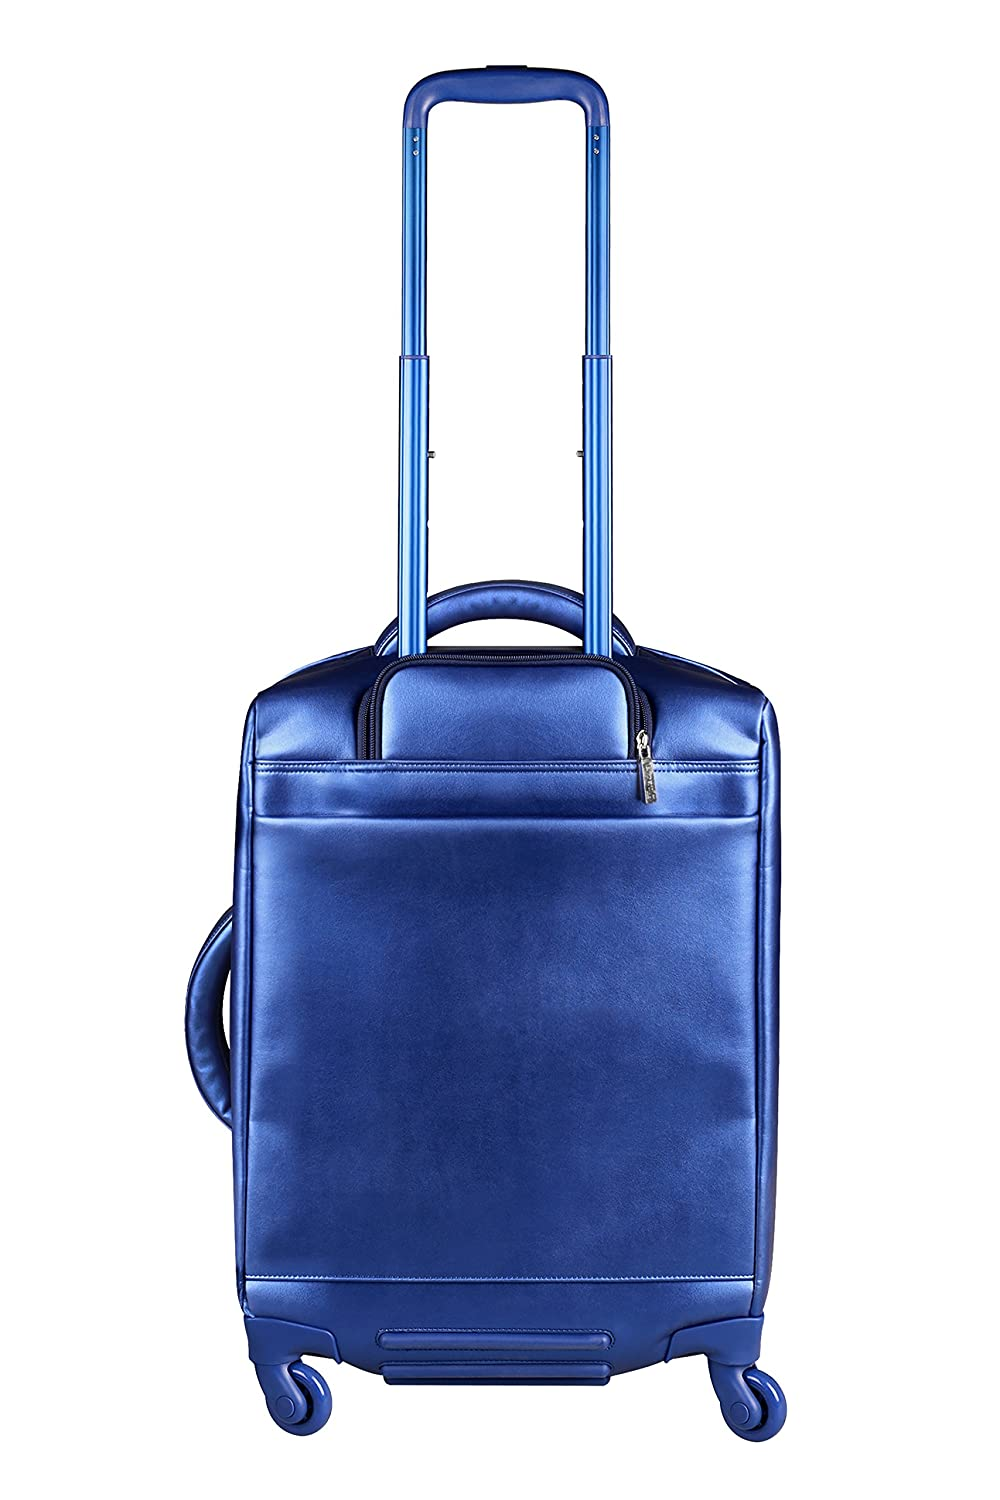 5f4cb4499 Lipault - Miss Plume Spinner 55/20 Luggage - Carry-On Rolling Bag for Women  - Exotic Blue: Amazon.com.au: Fashion